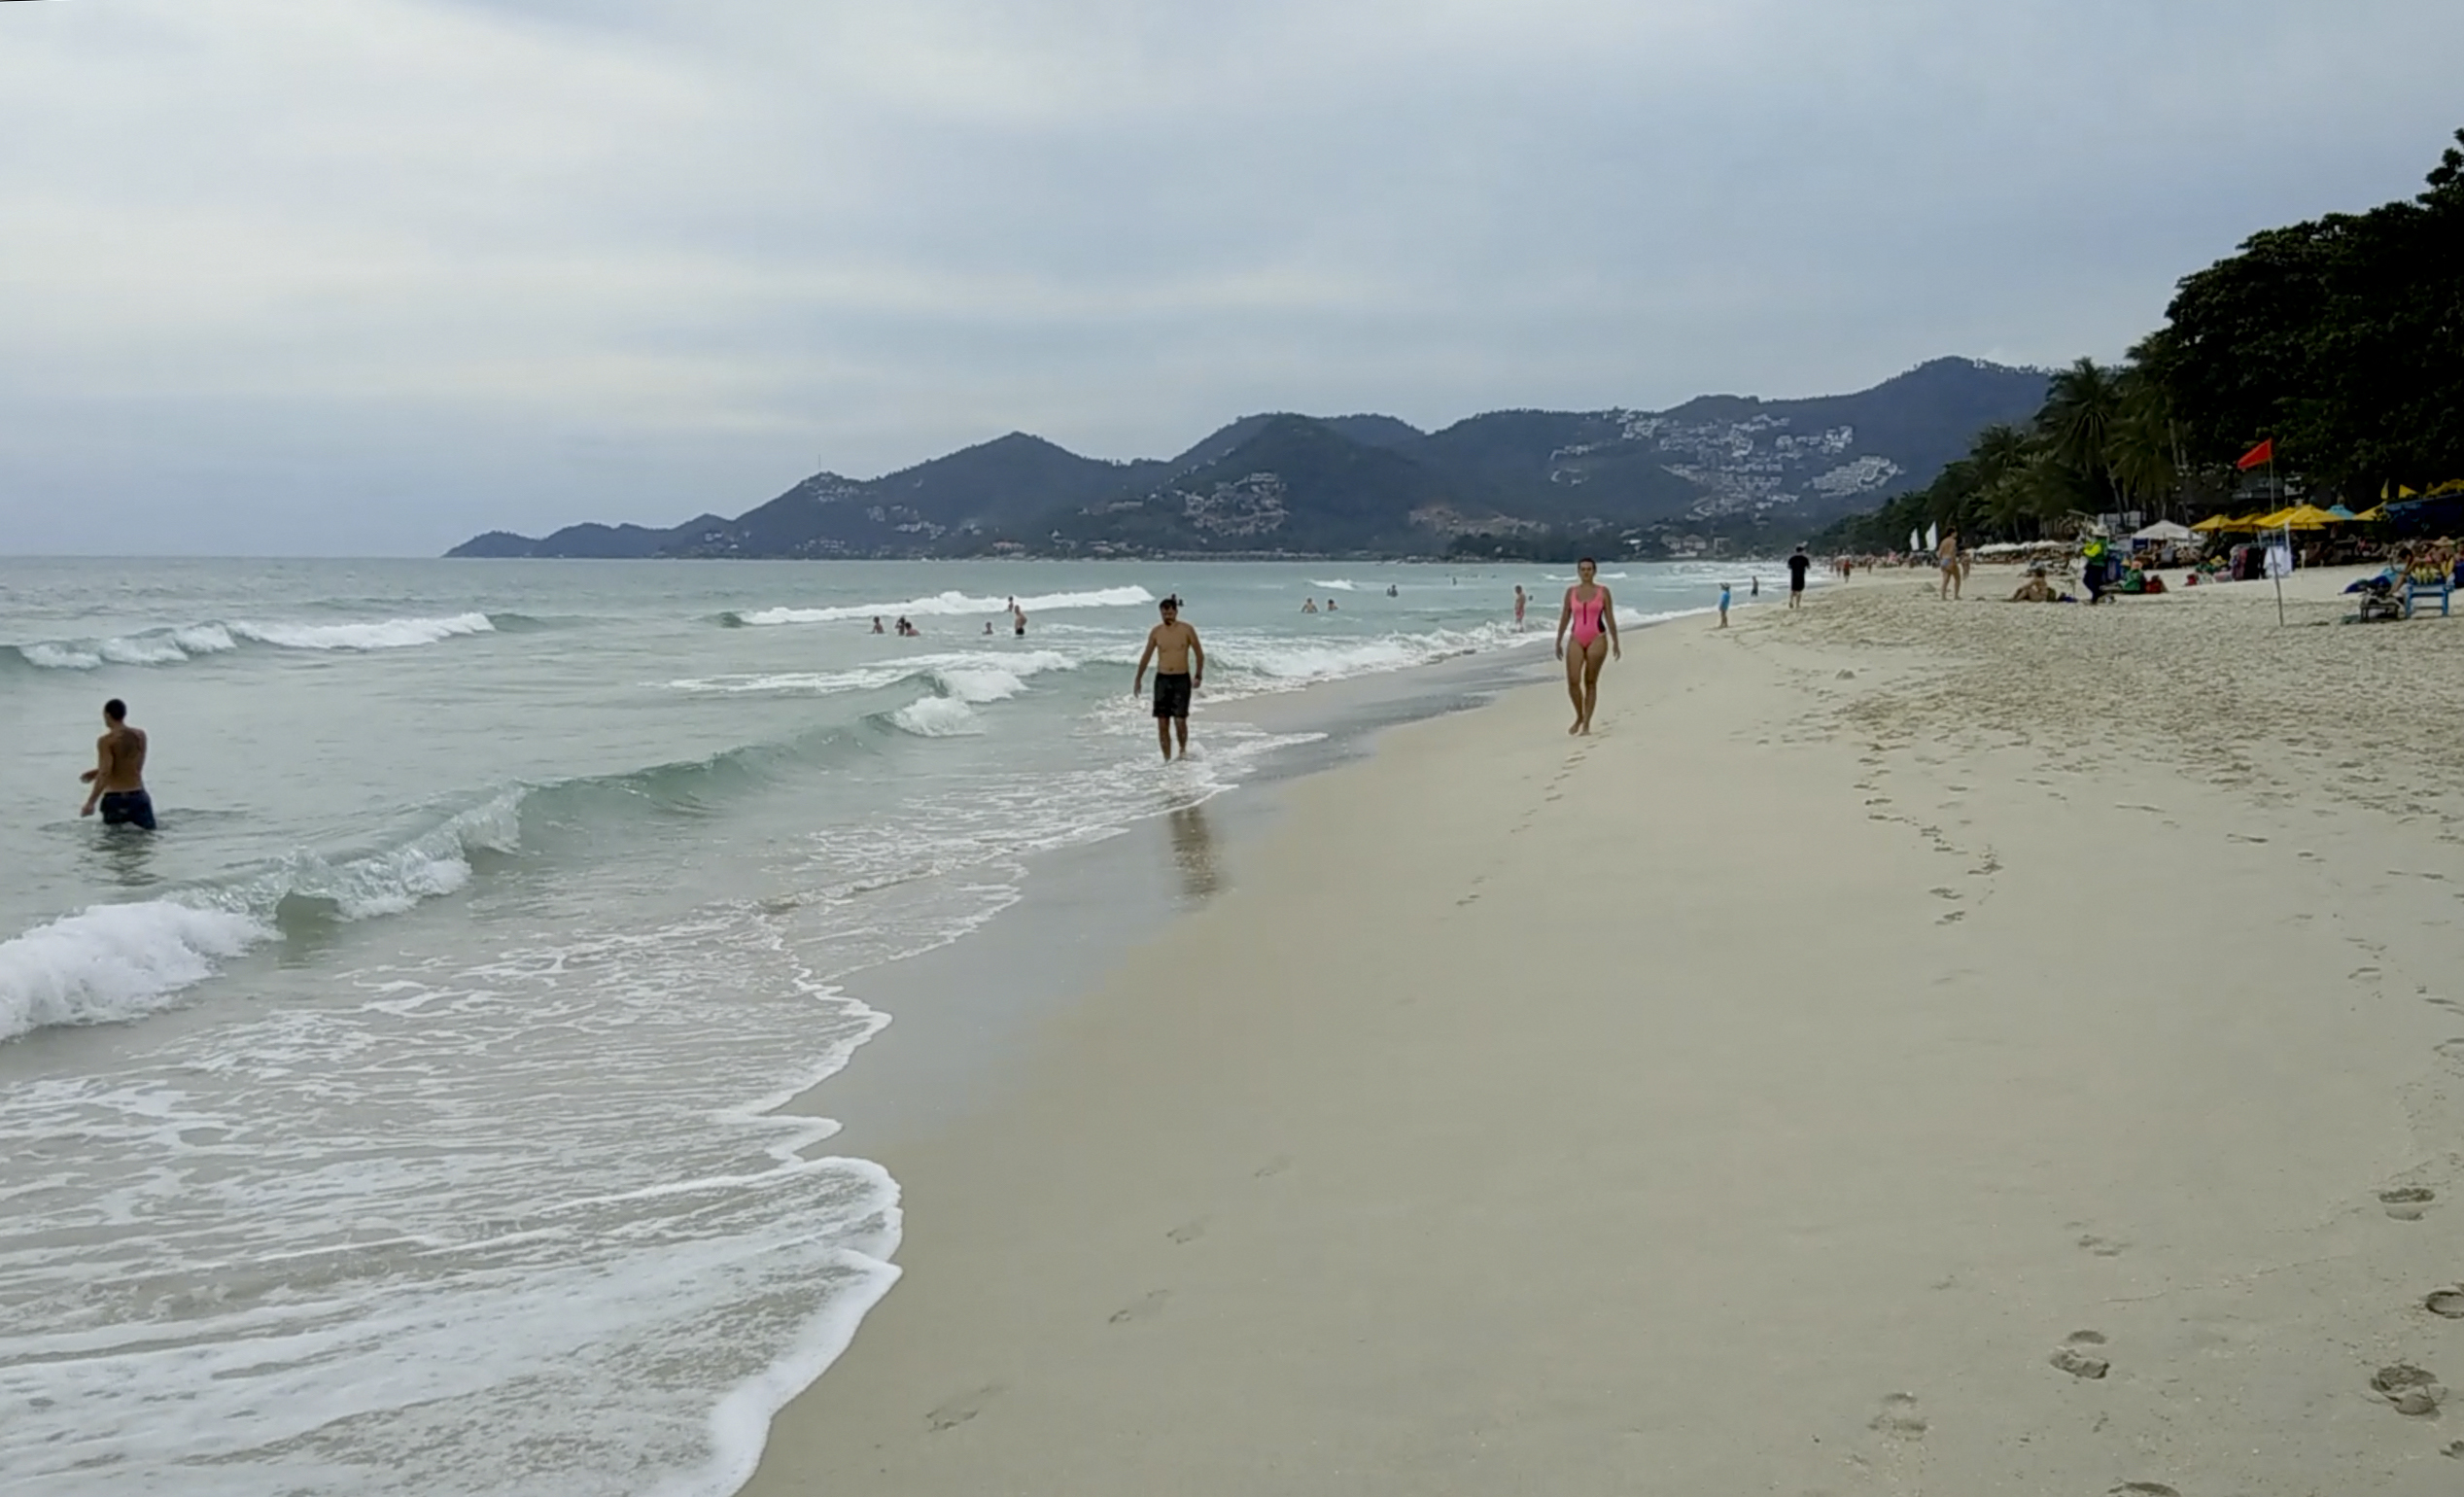 Tourists walk in Chaweng Beach in Koh Samui, Thailand as a red flag indicating expected rough weather conditions displayed on the beach